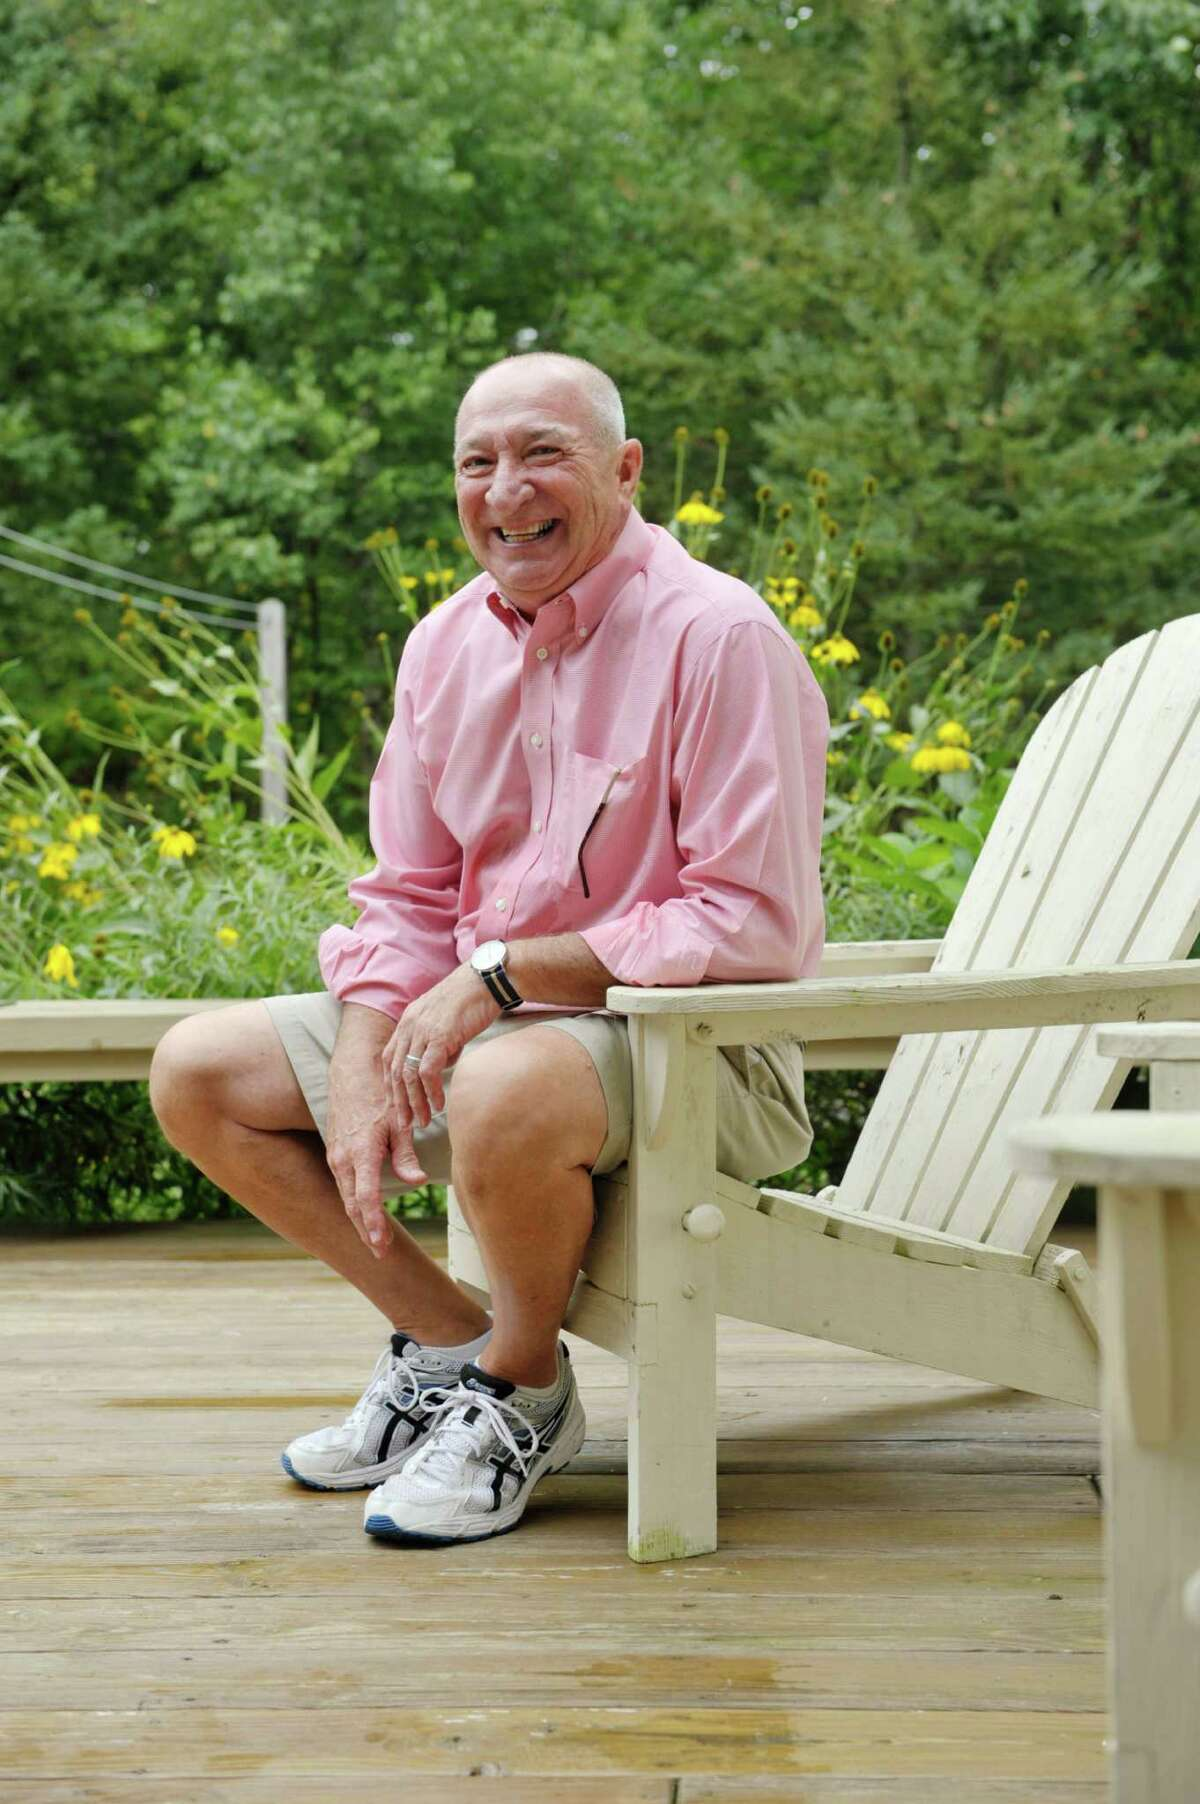 Navy, Vietnam veteran Keith Martel outside on the deck of his home on Thursday, Sept. 10, 2015, in North Greenbush, N.Y. (Paul Buckowski / Times Union)